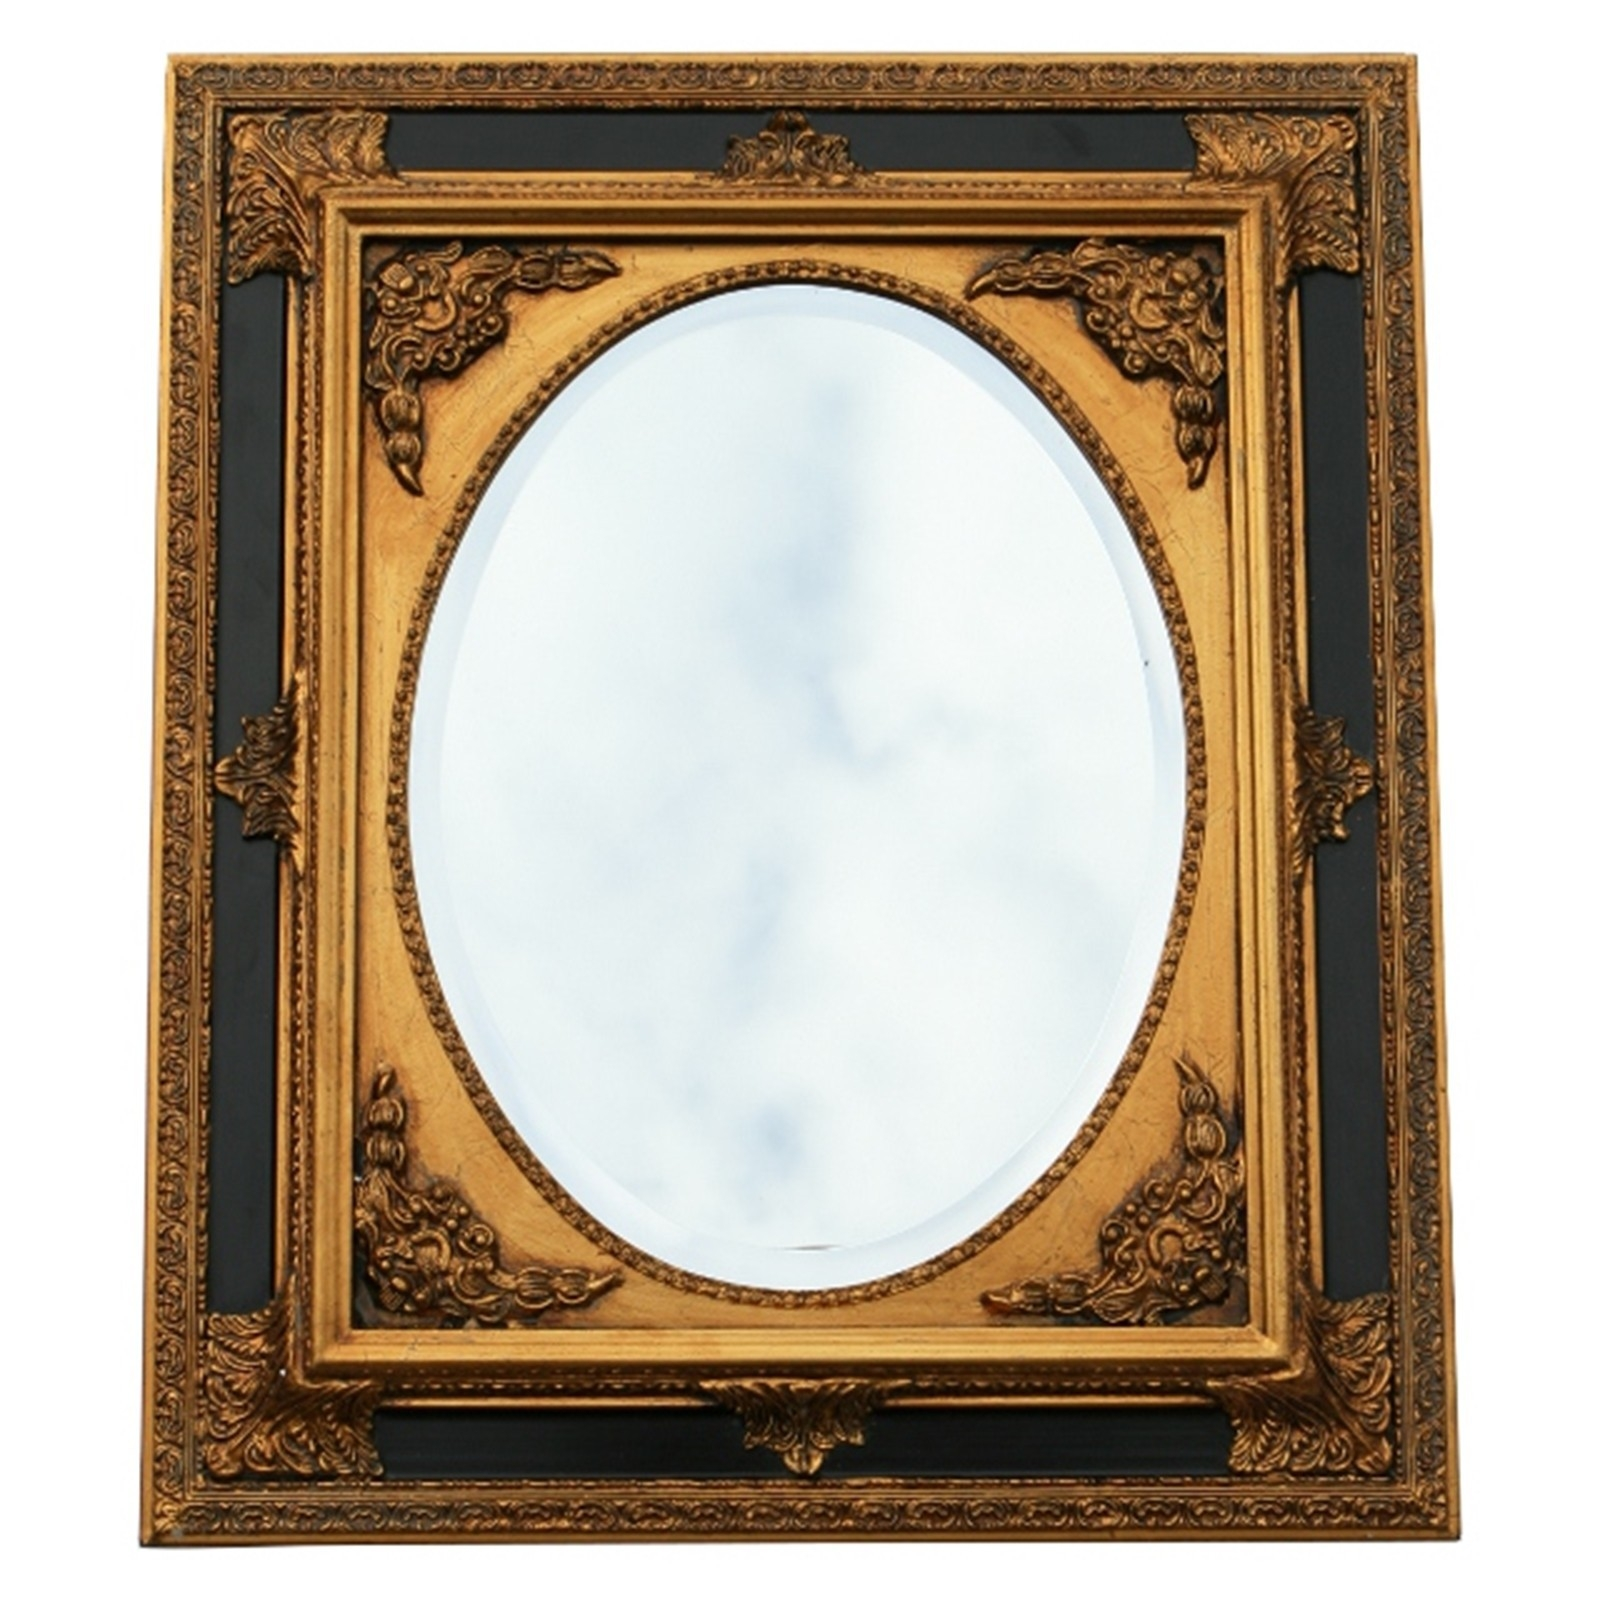 Baroque Wall Mirror Oval Ornate Frame 50×60 20×24 Inches Antique For Black Baroque Mirror (Image 5 of 15)